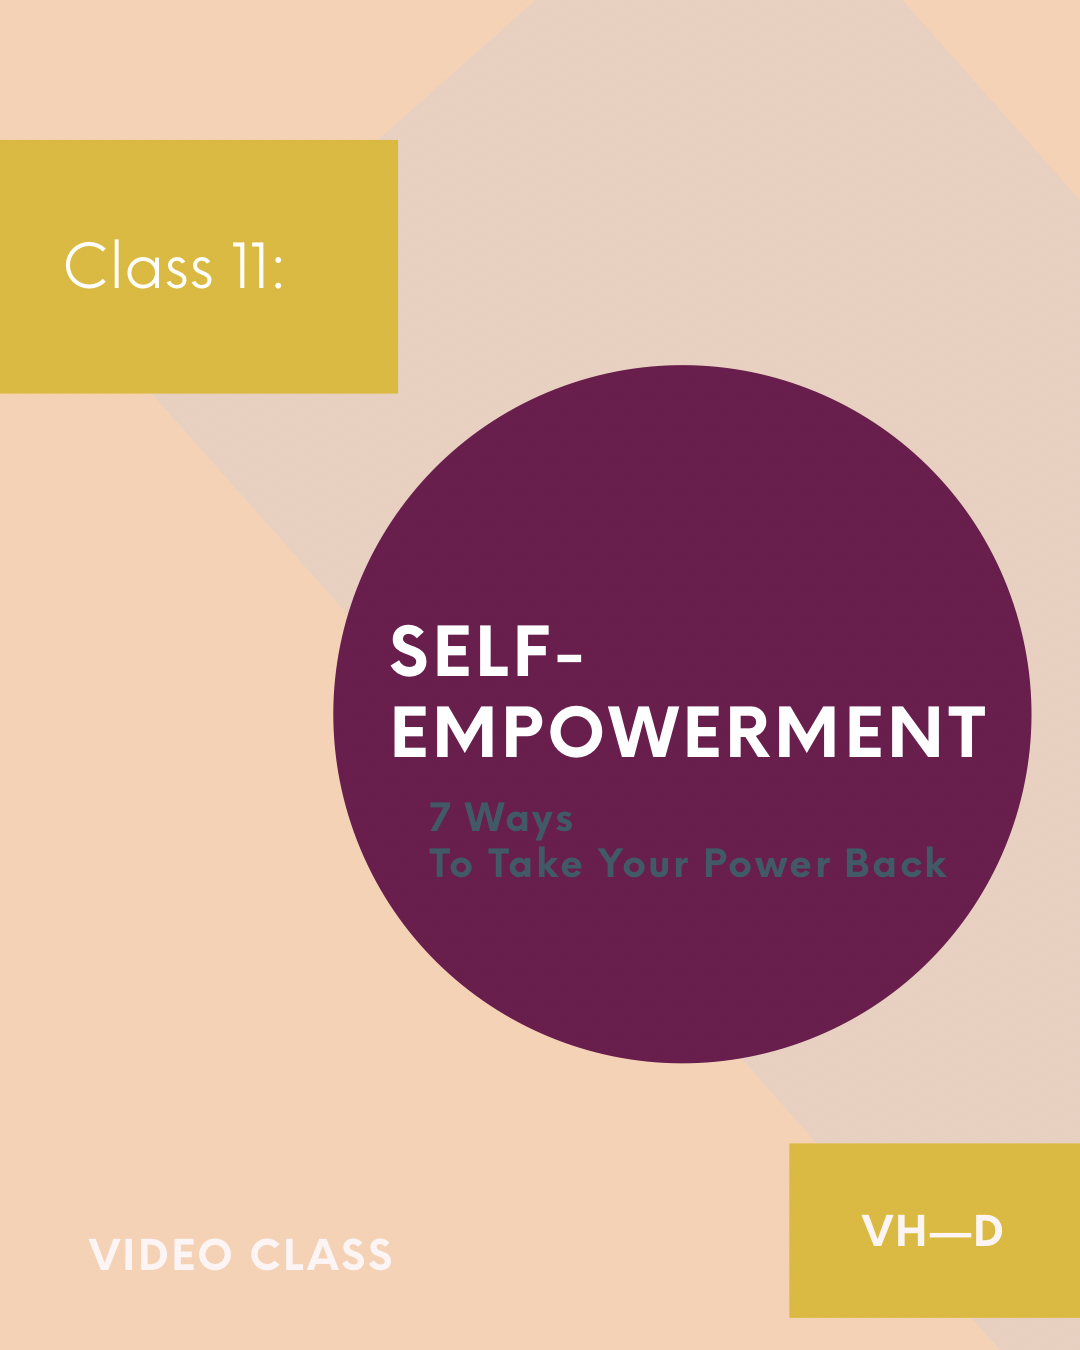 Self-Empowerment - 7 Essentials Ways to Take Your Power BackEmpowerment allows you to go higher and beyond where you are now!Are you living an empowered life?Dis-empowerment can cause negative thoughts, fears, blockages, doubts, pain, insecurities, circumstances, lower vibrations, and unhealthy subconscious-beliefs, to consume our lives, to keep us from living a fulfilling life, to keep us from reaching out higher potential, and from thriving in life; if we allow them to.In class 11, we'll cover 7 essentials ways to put Self-Empowerment into practice and full-effect. Let's thrive in, and through, life!